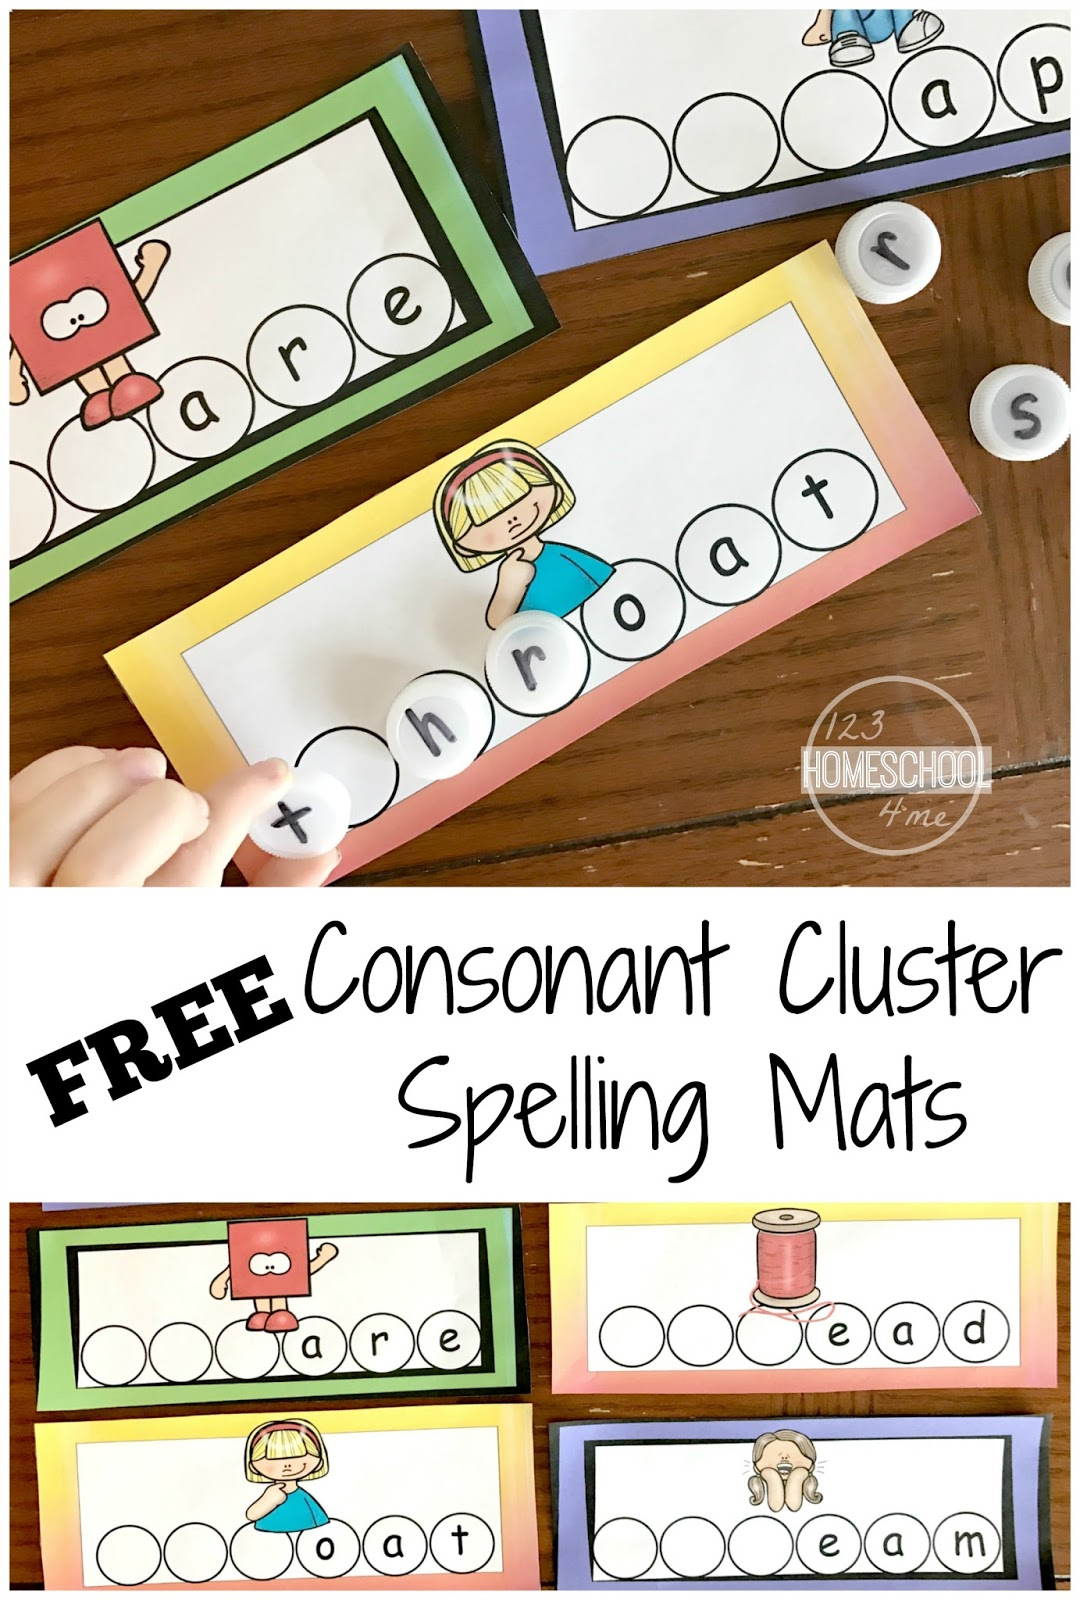 Free Consonant Clusters Spelling Mats